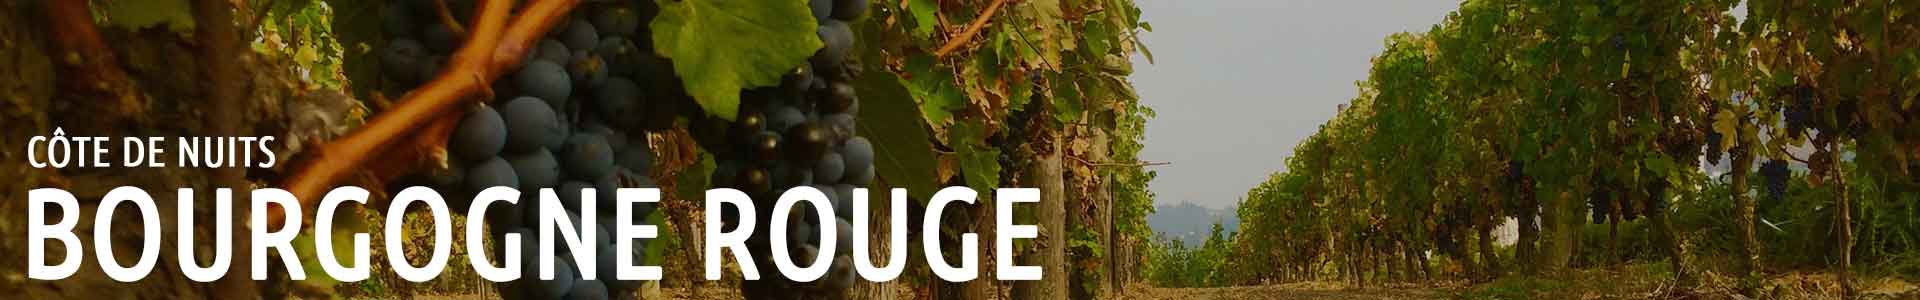 Pleasure Wine: Bourgogne Rouge Wines